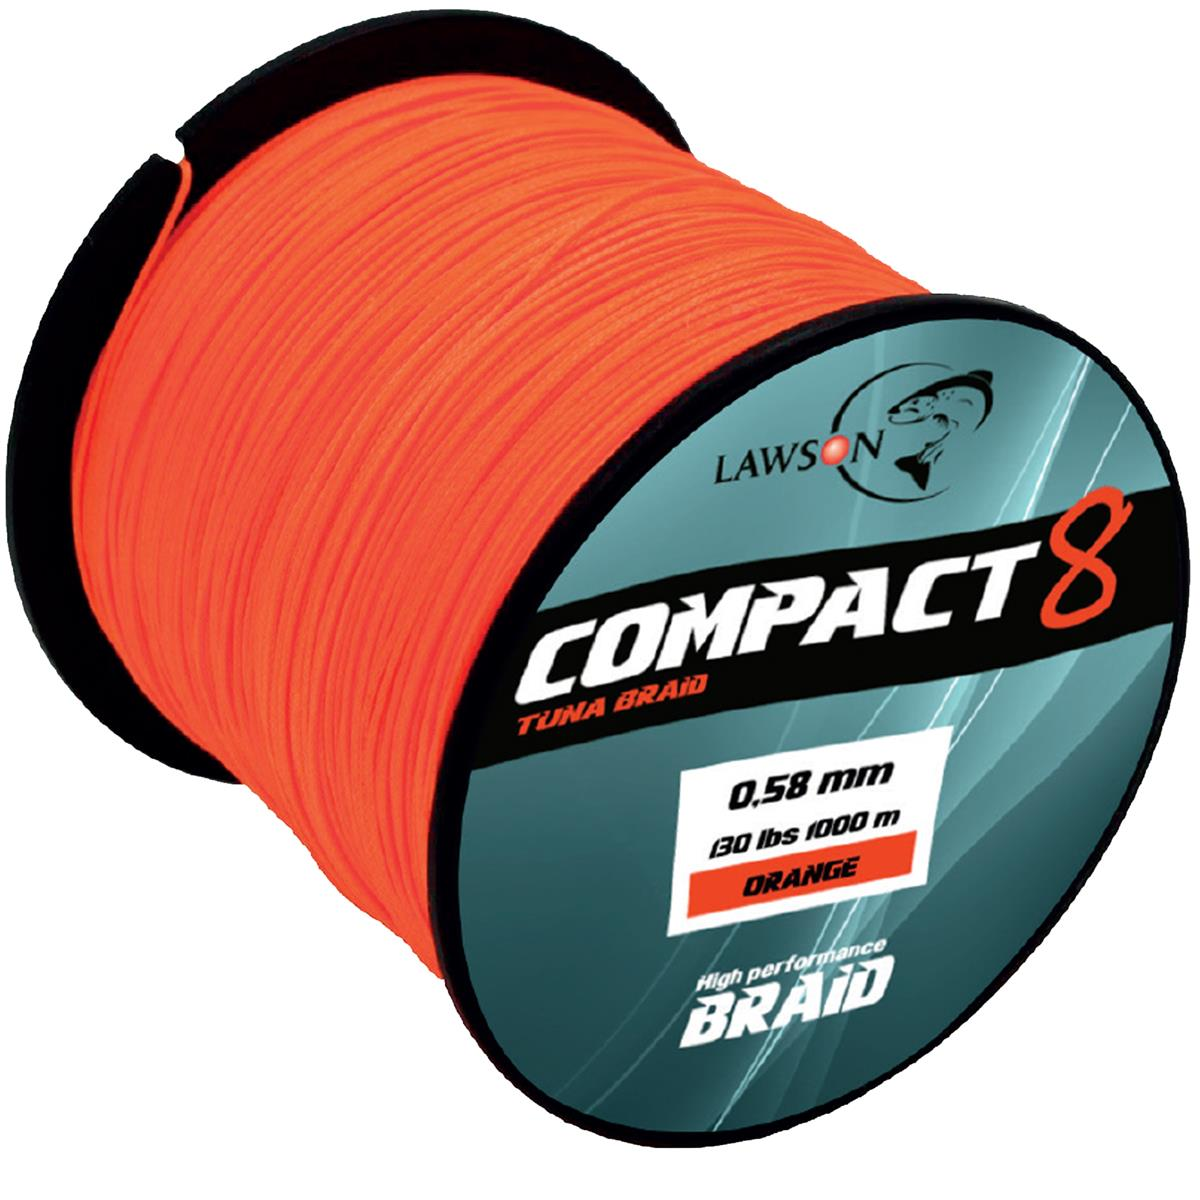 Lawson Compact 8 Tuna Orange 1000 m